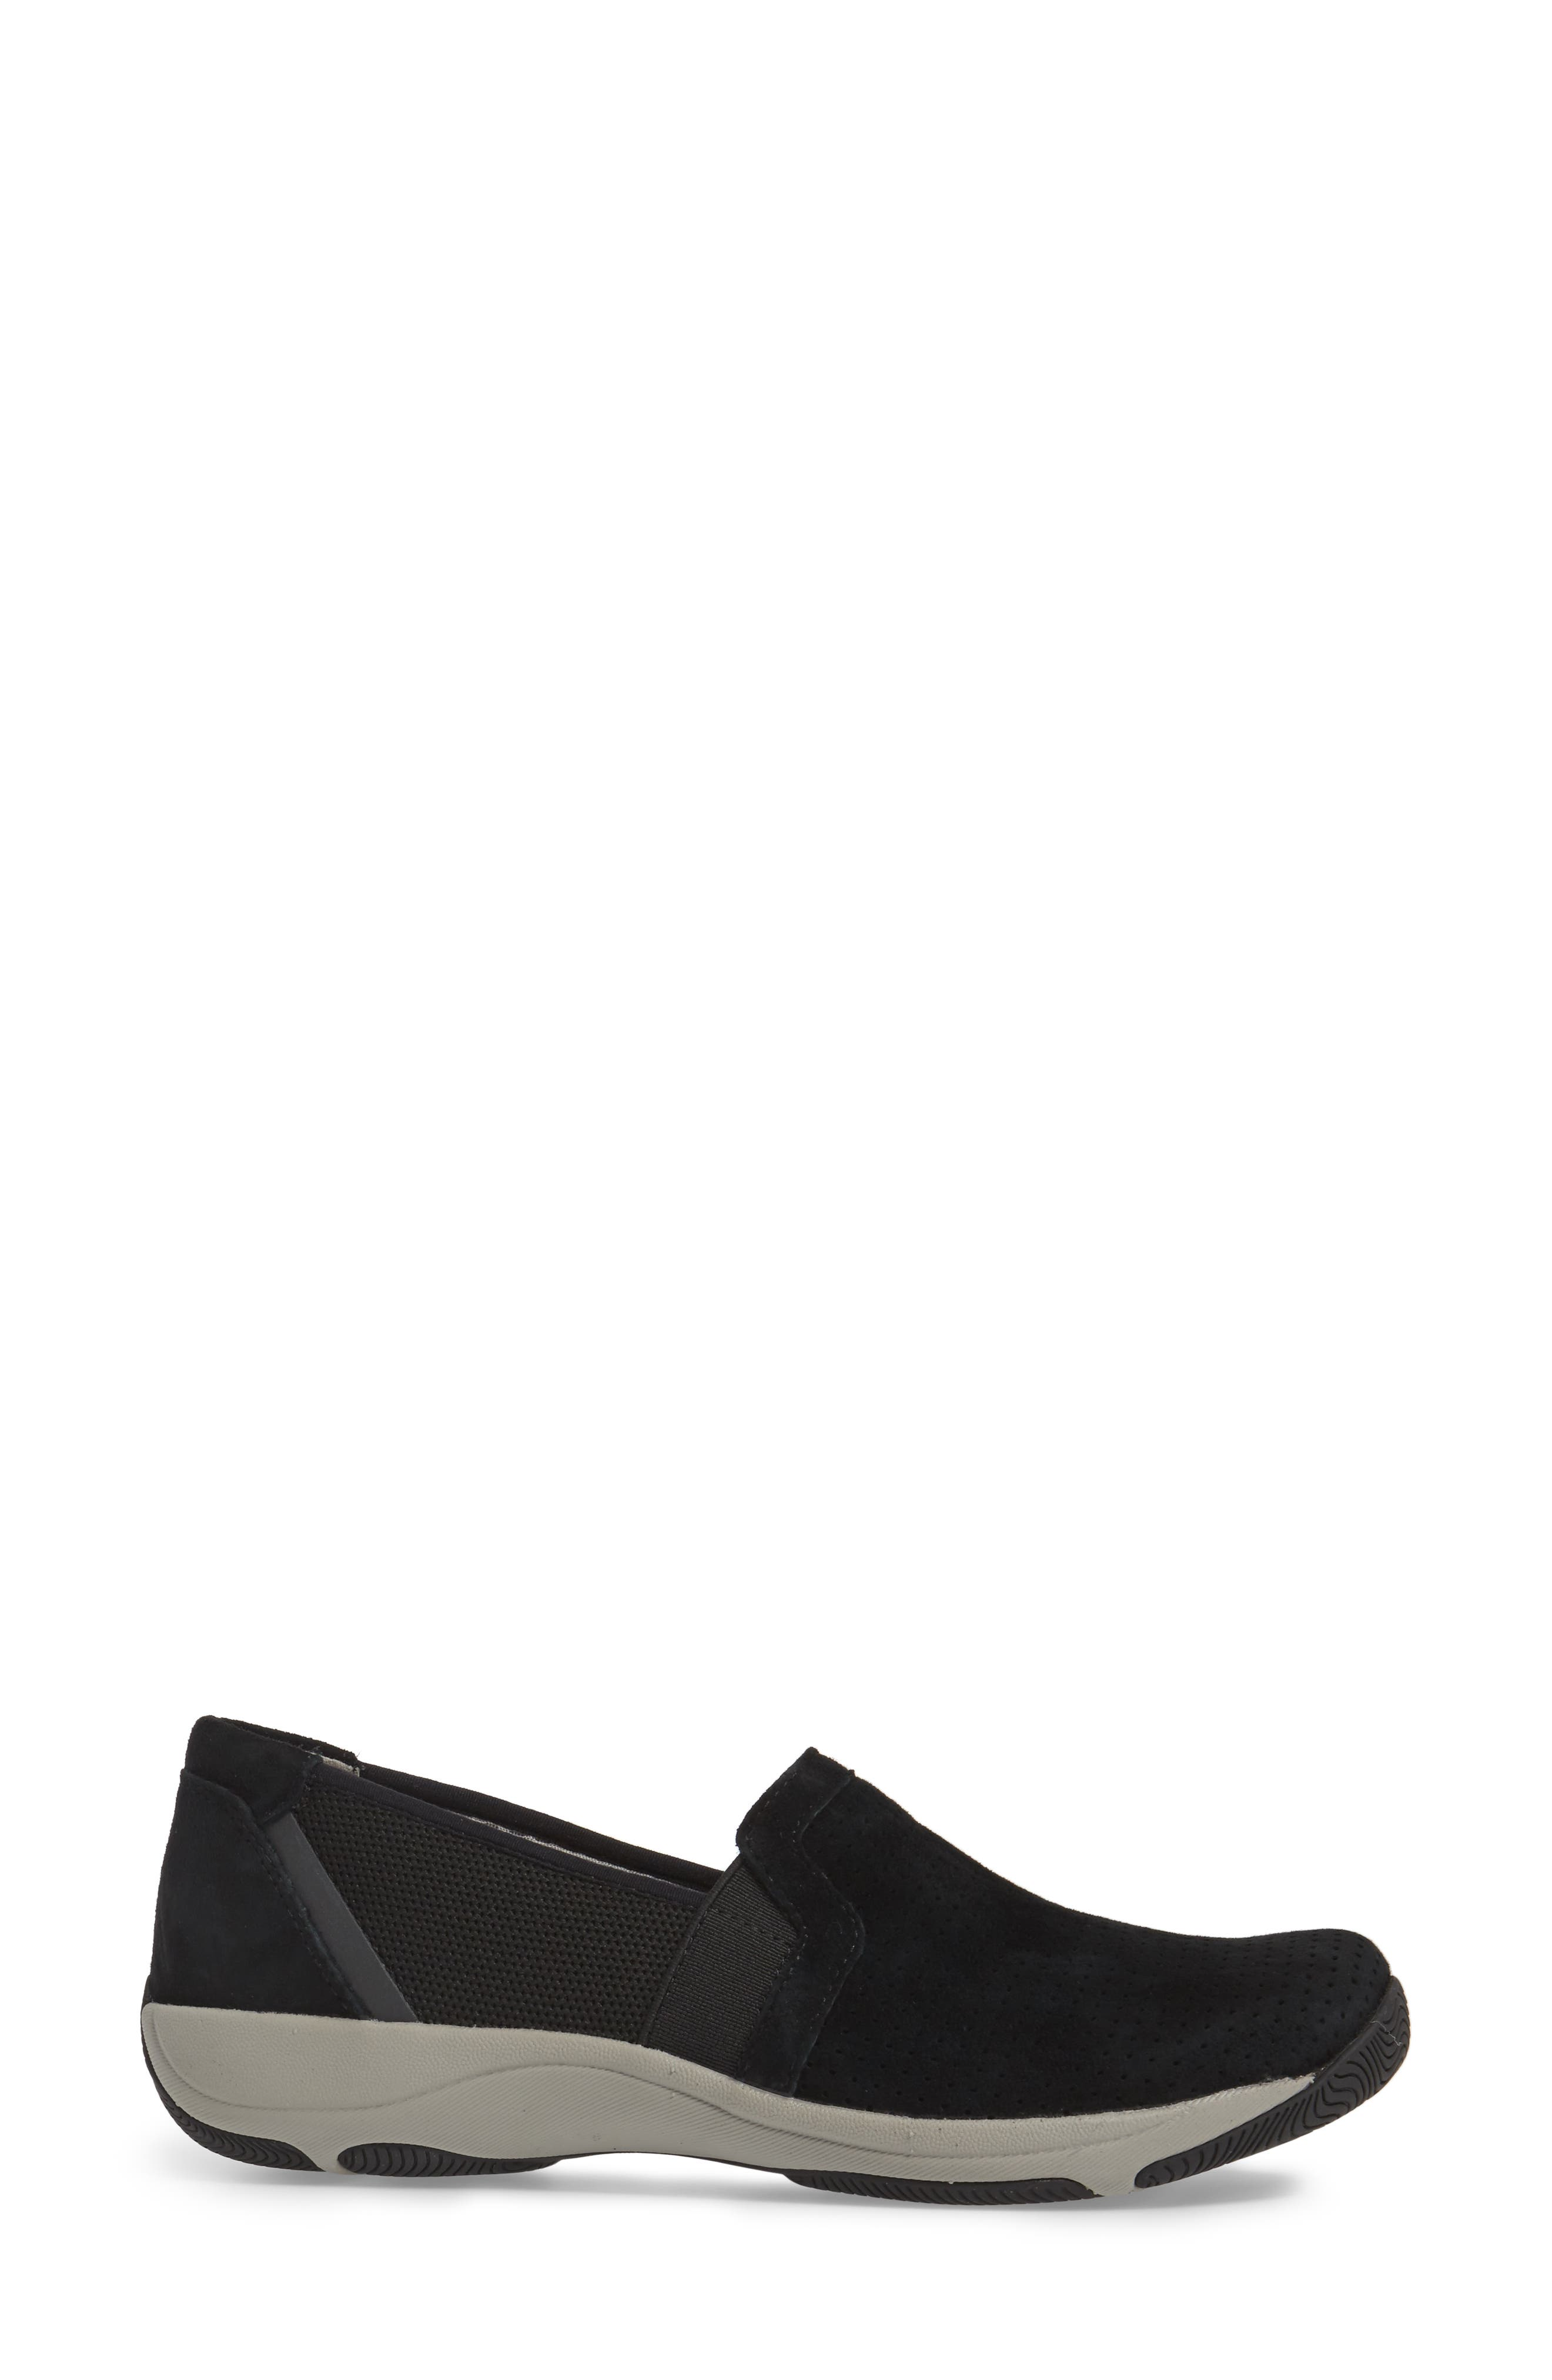 Halifax Collection Halle Slip-On Sneaker,                             Alternate thumbnail 7, color,